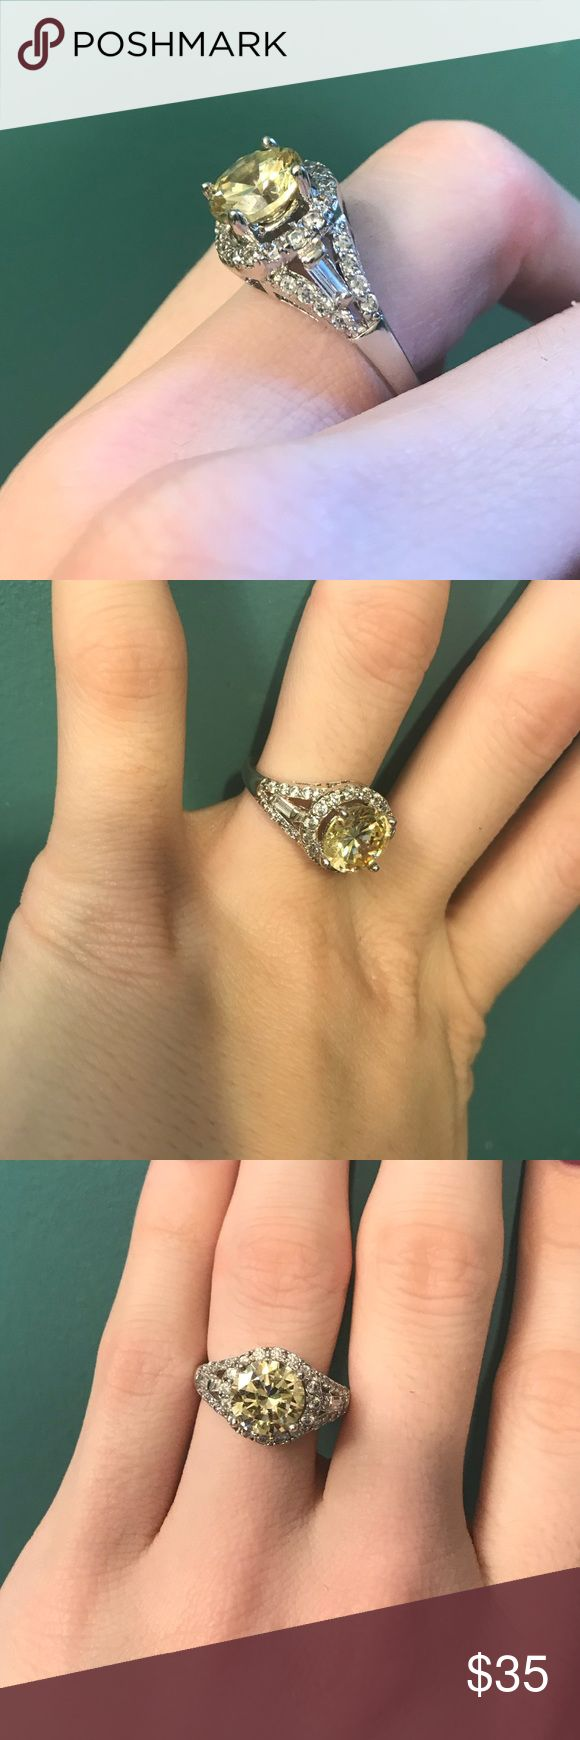 Sterling silver canary engagement ring Carrie underwood inspired and absolutely stunning! Used as a vacation ring 😍 open to offers and trades — perfect for Christmas and Valentine's Day! Jewelry Rings